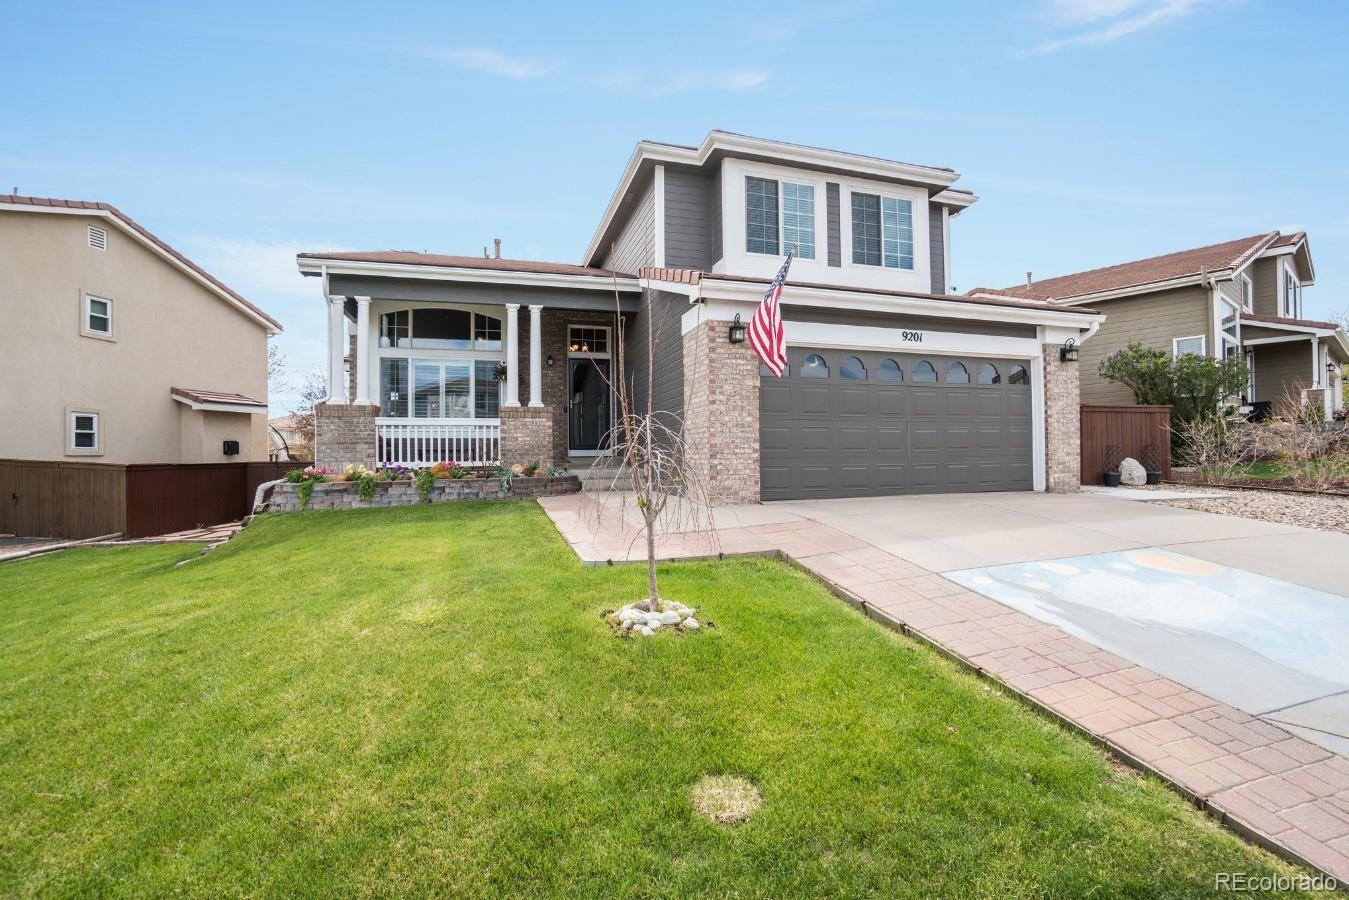 9201 Anasazi Indian Trail, Highlands Ranch, CO 80129 - #: 5655999